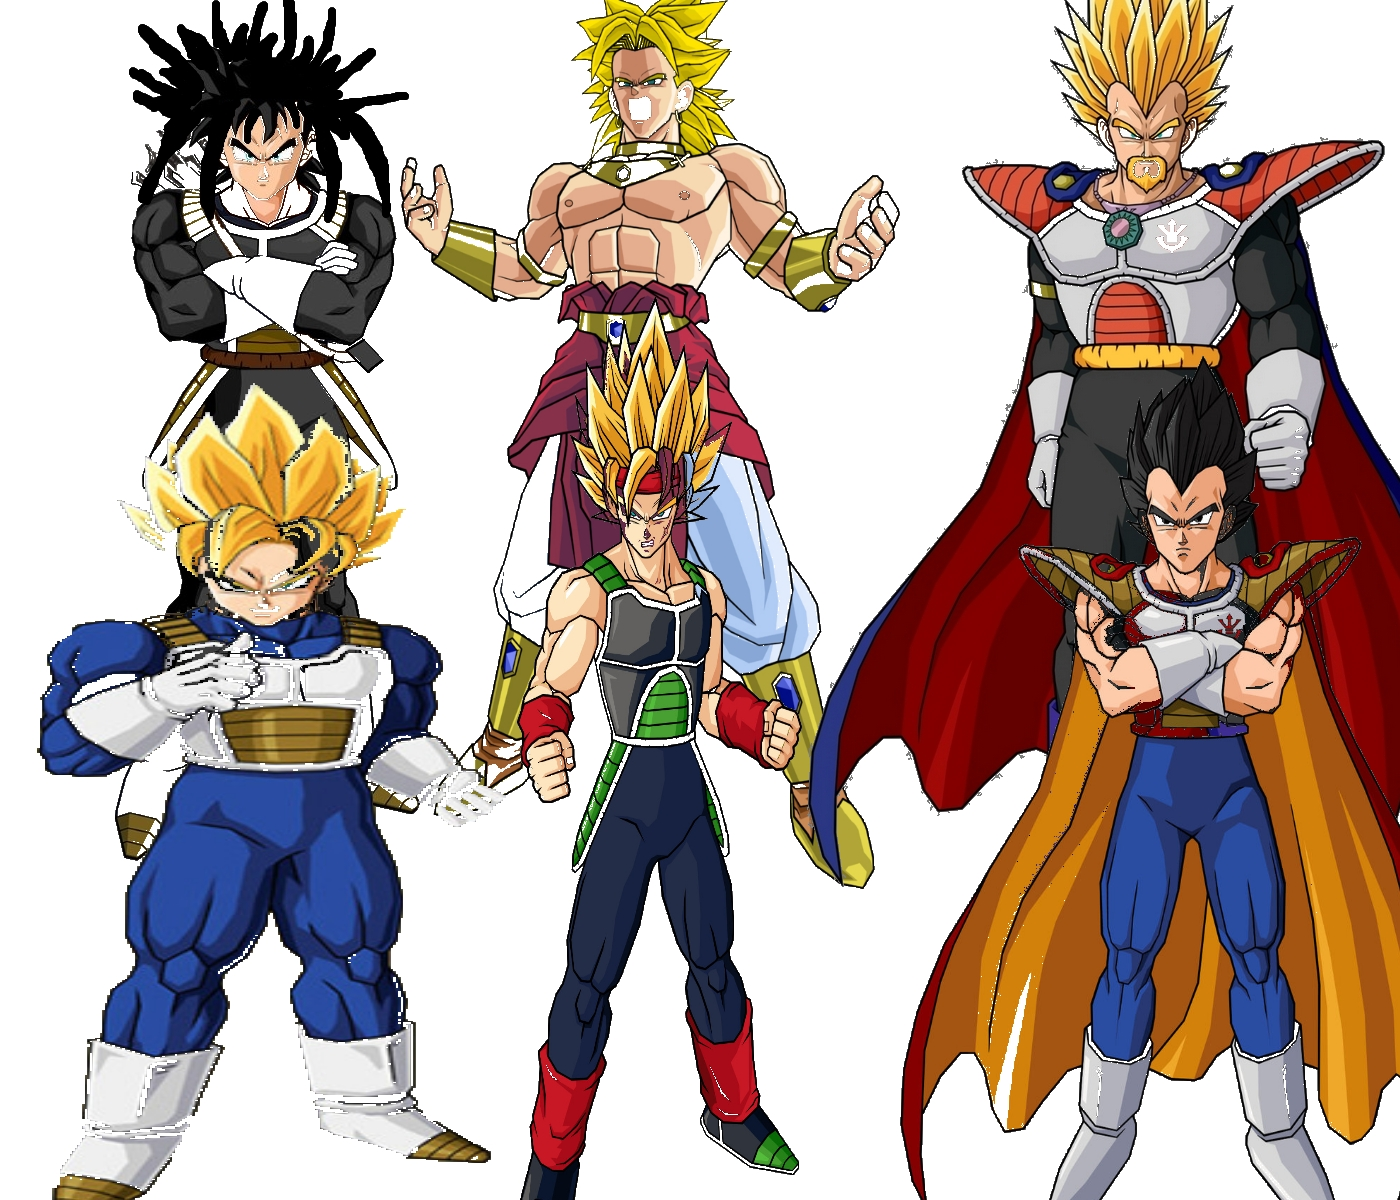 King Vegeta Super Saiyan 5 vegeta ssj  The Saiyan